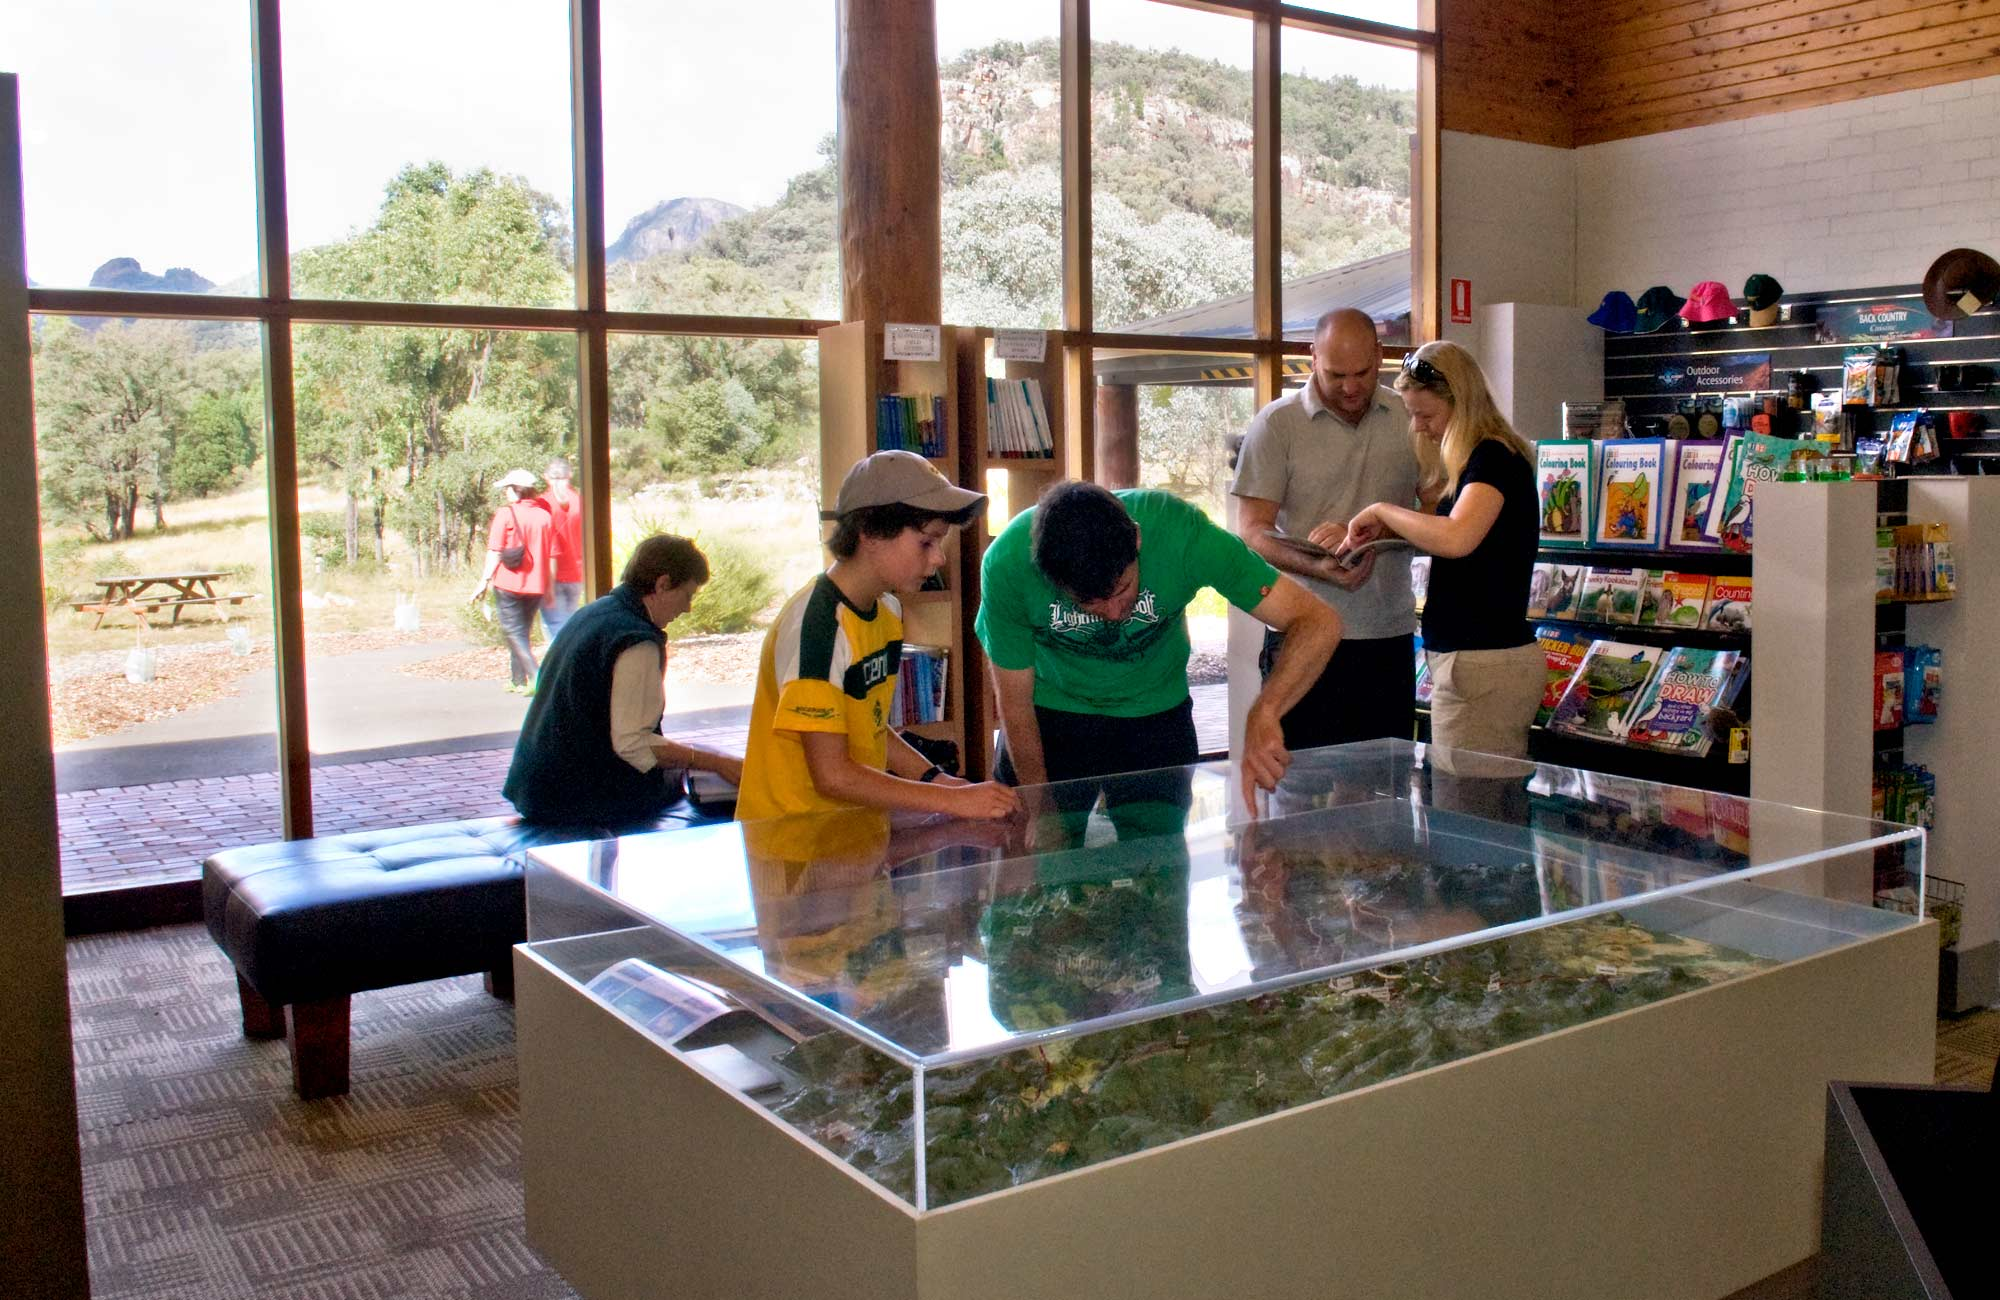 Warrumbungle Visitor Centre, Warrumbungle National Park. Photo: Boris Hlavica